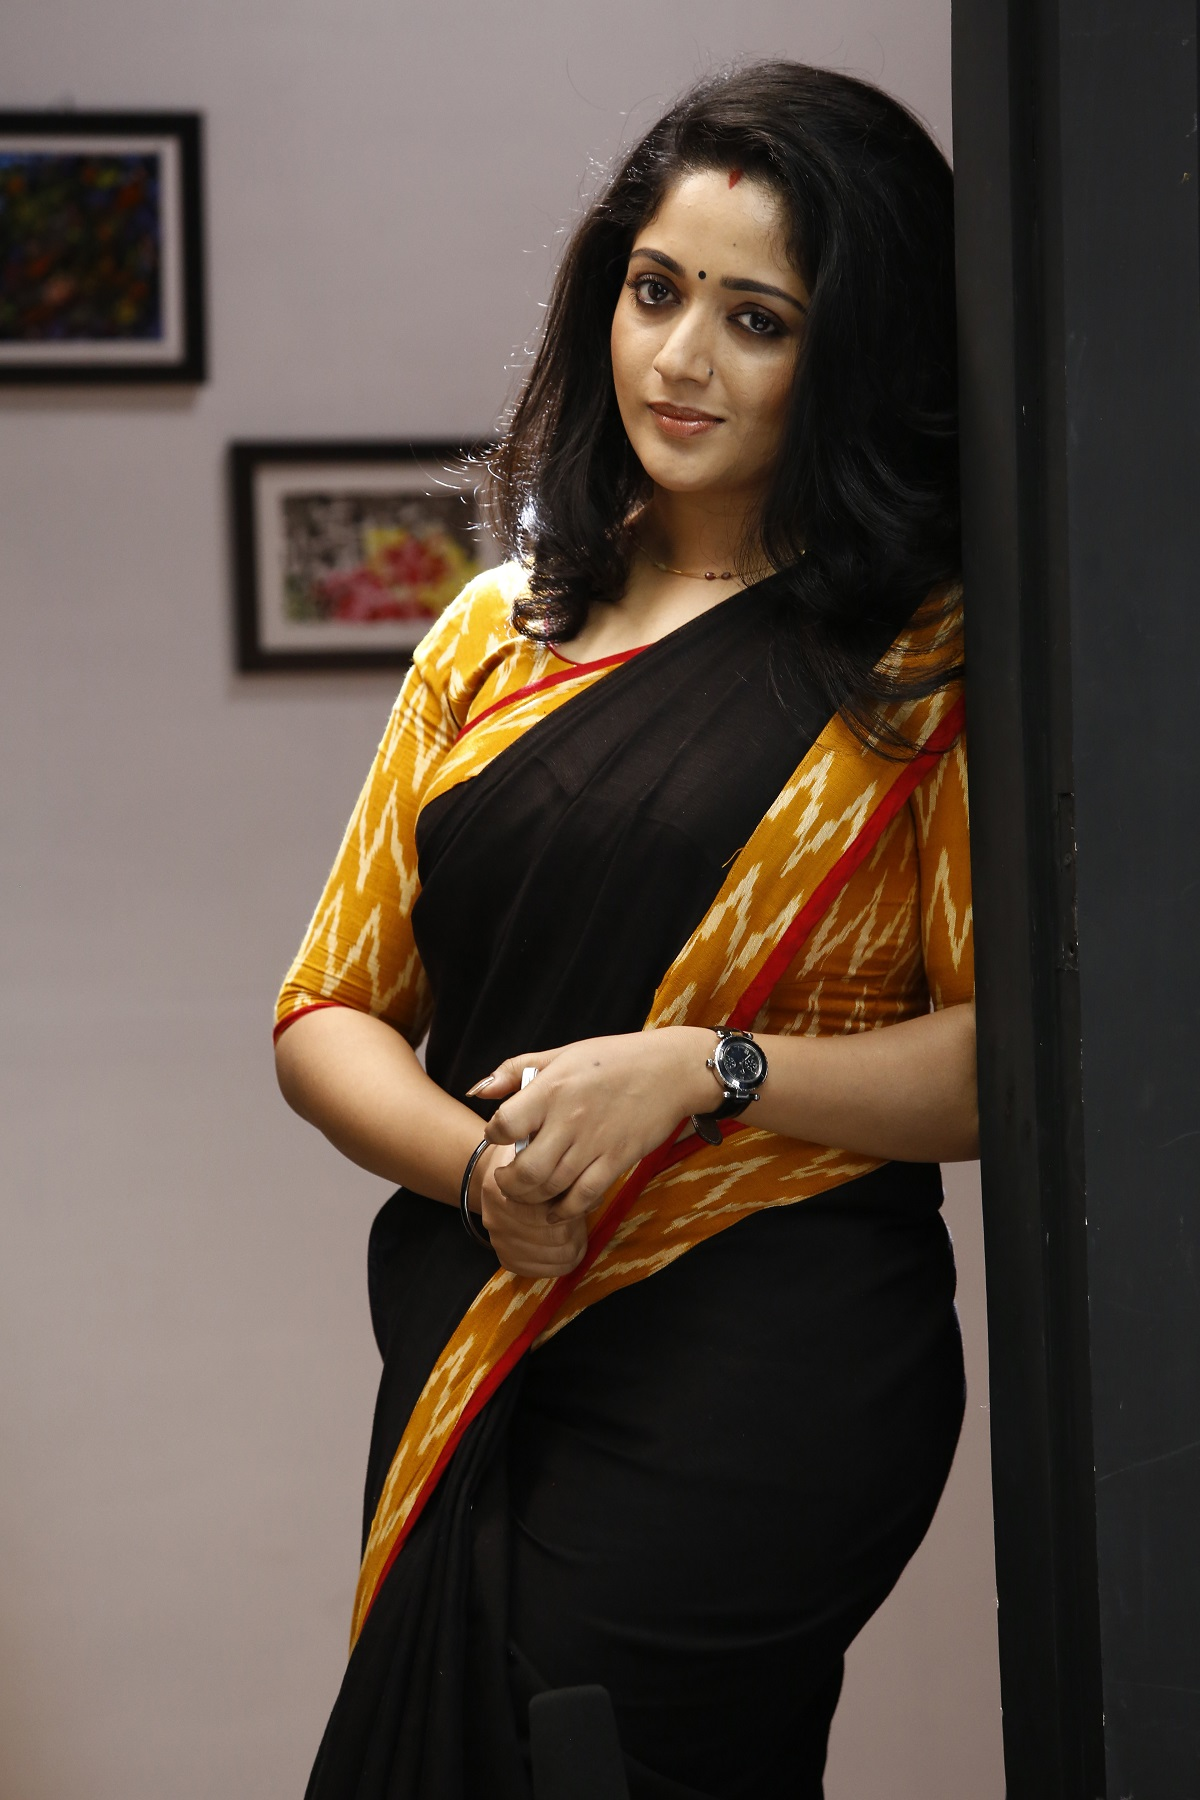 kavya madhavan hot amp sizzling wallpapers full hd photos